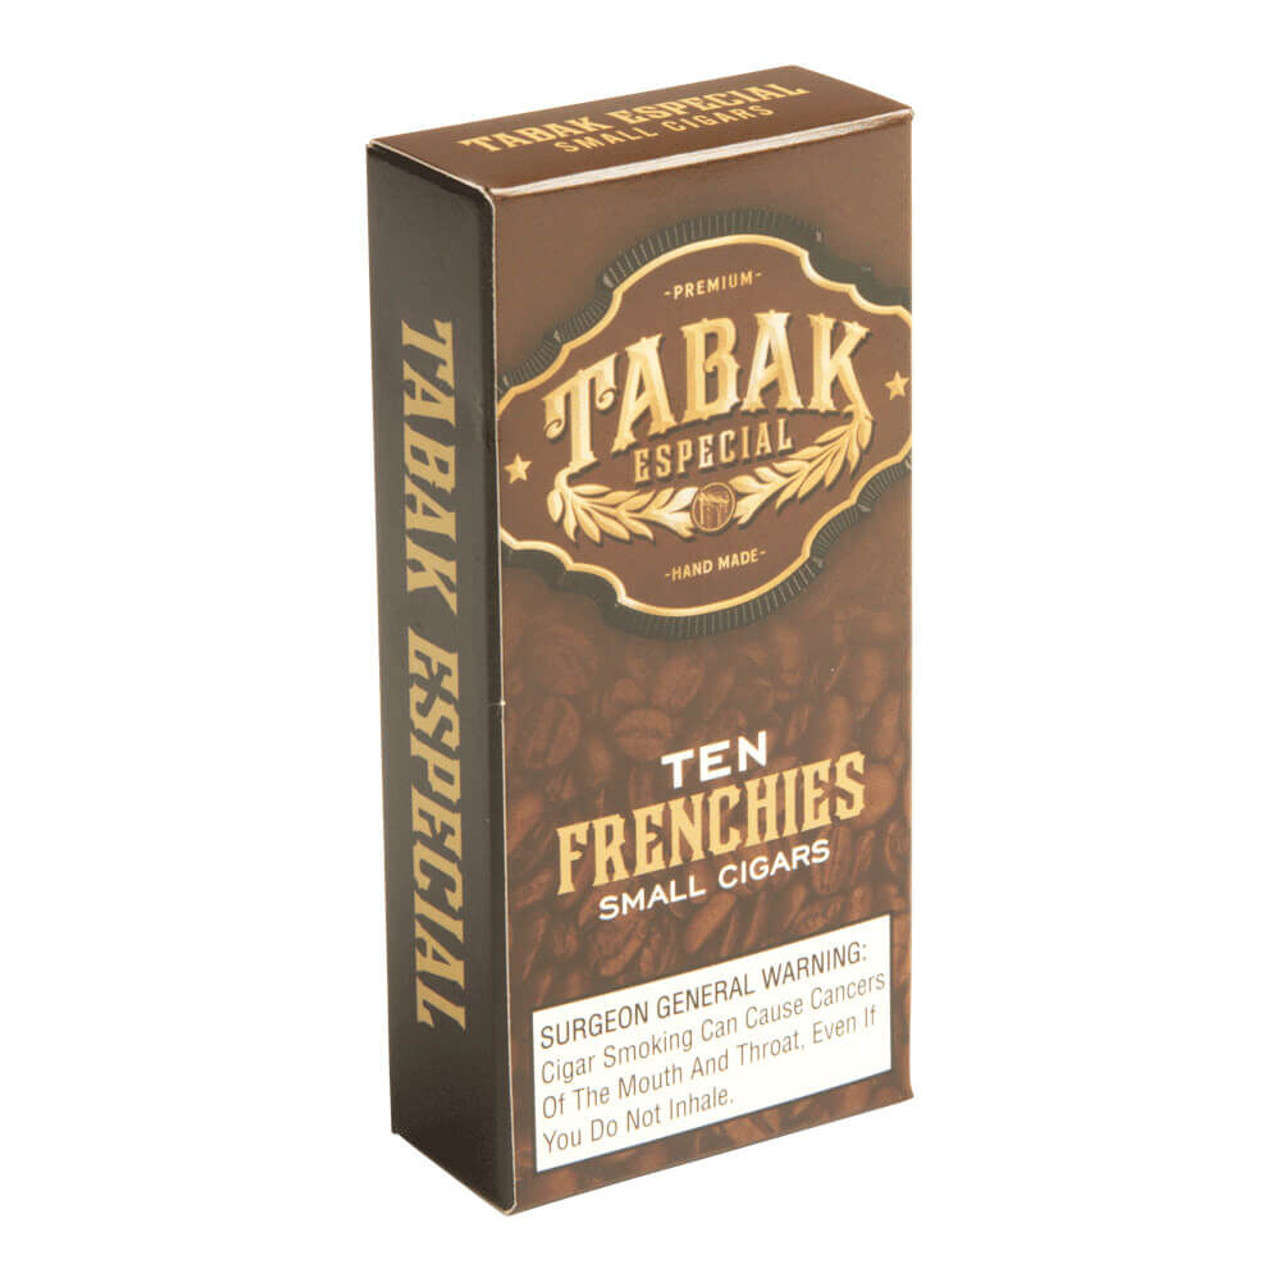 Tabak Especial by Drew Estate Frenchies Cigars - 3.75 x 20 (10 Packs of 10 (100 total))